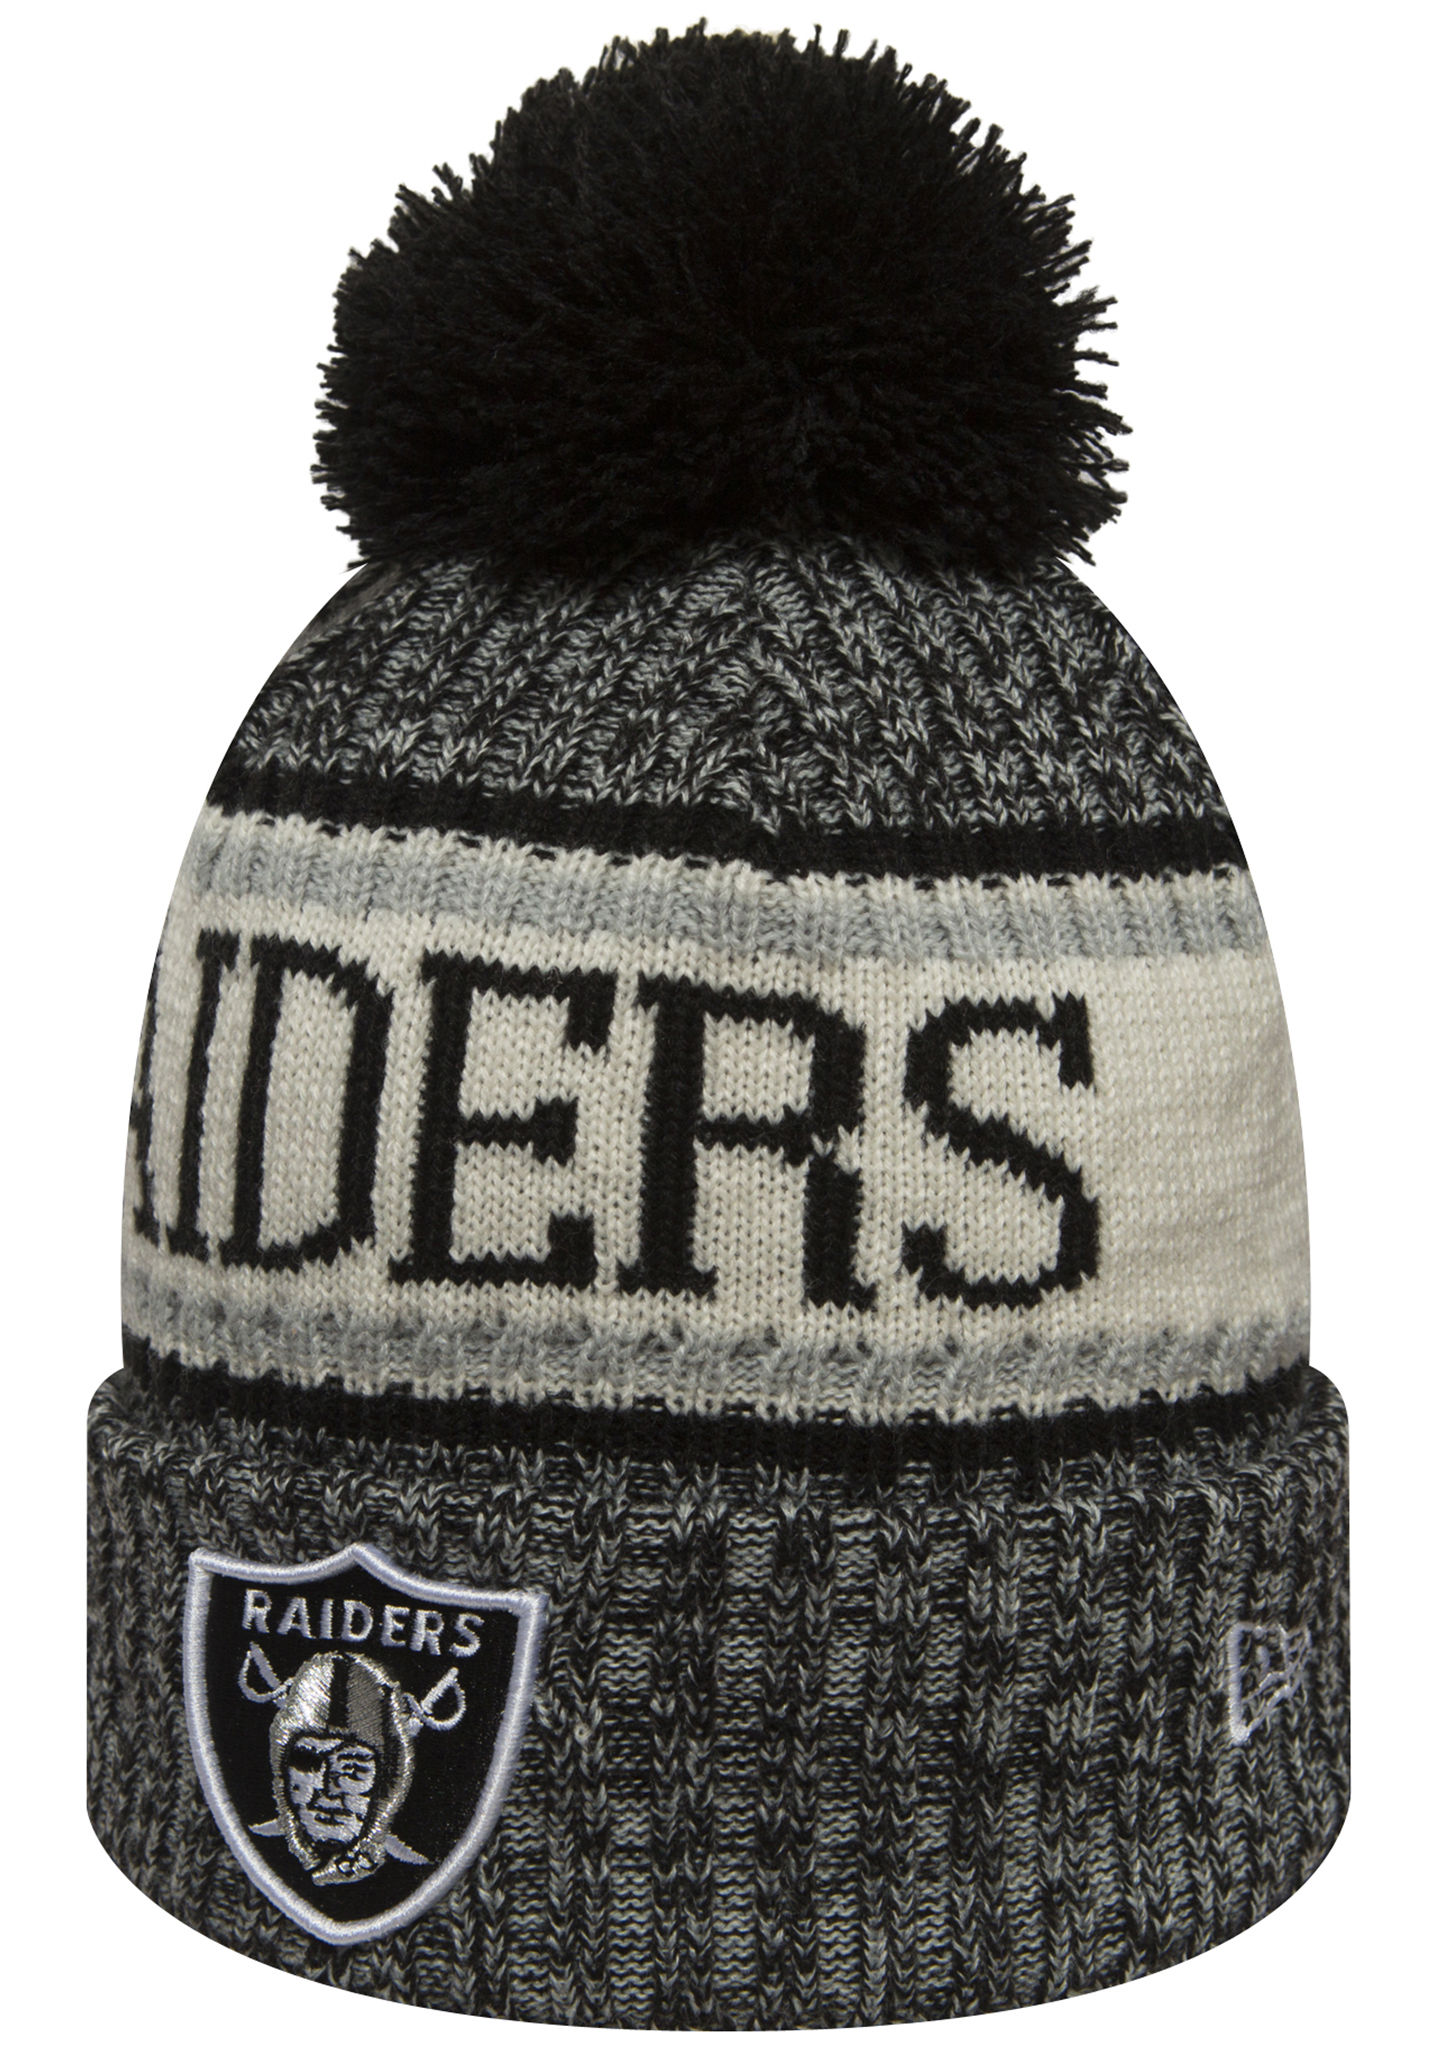 42e6ee3662c New era sideline oakland raiders beanie grey planet sports jpg 1430x2048  New era raiders beanie